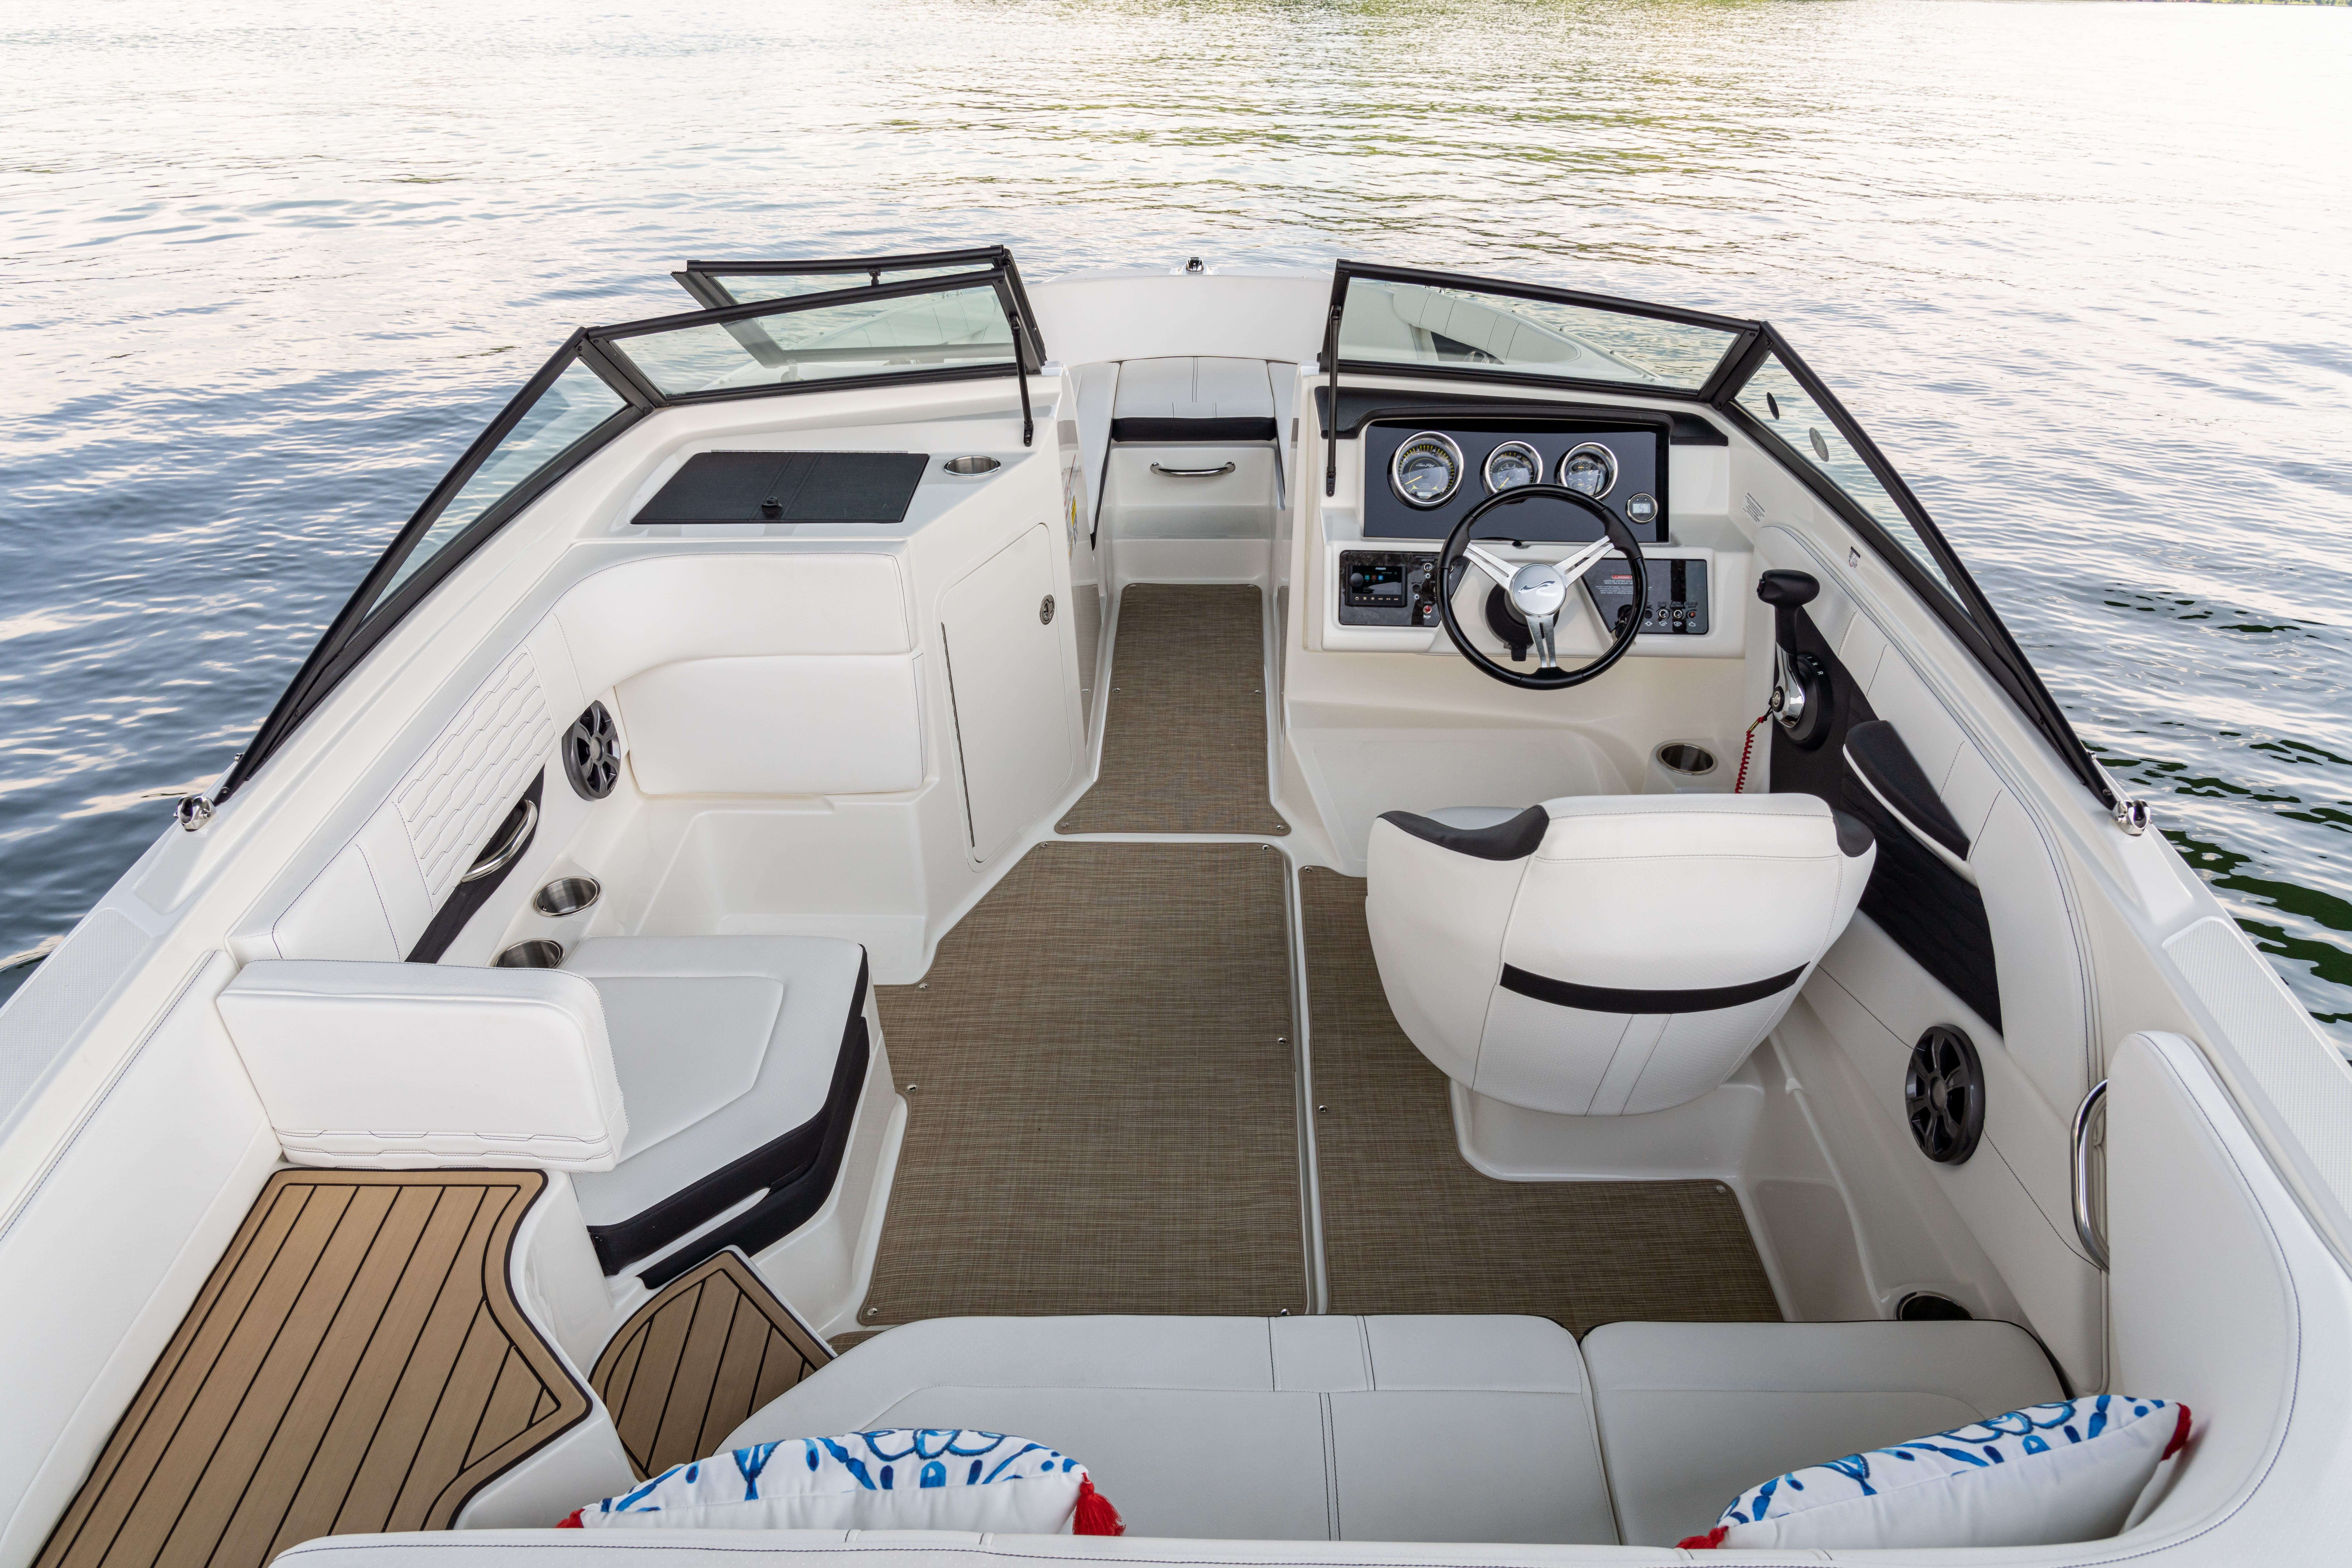 2022 Sea Ray boat for sale, model of the boat is 190SPX & Image # 5 of 7